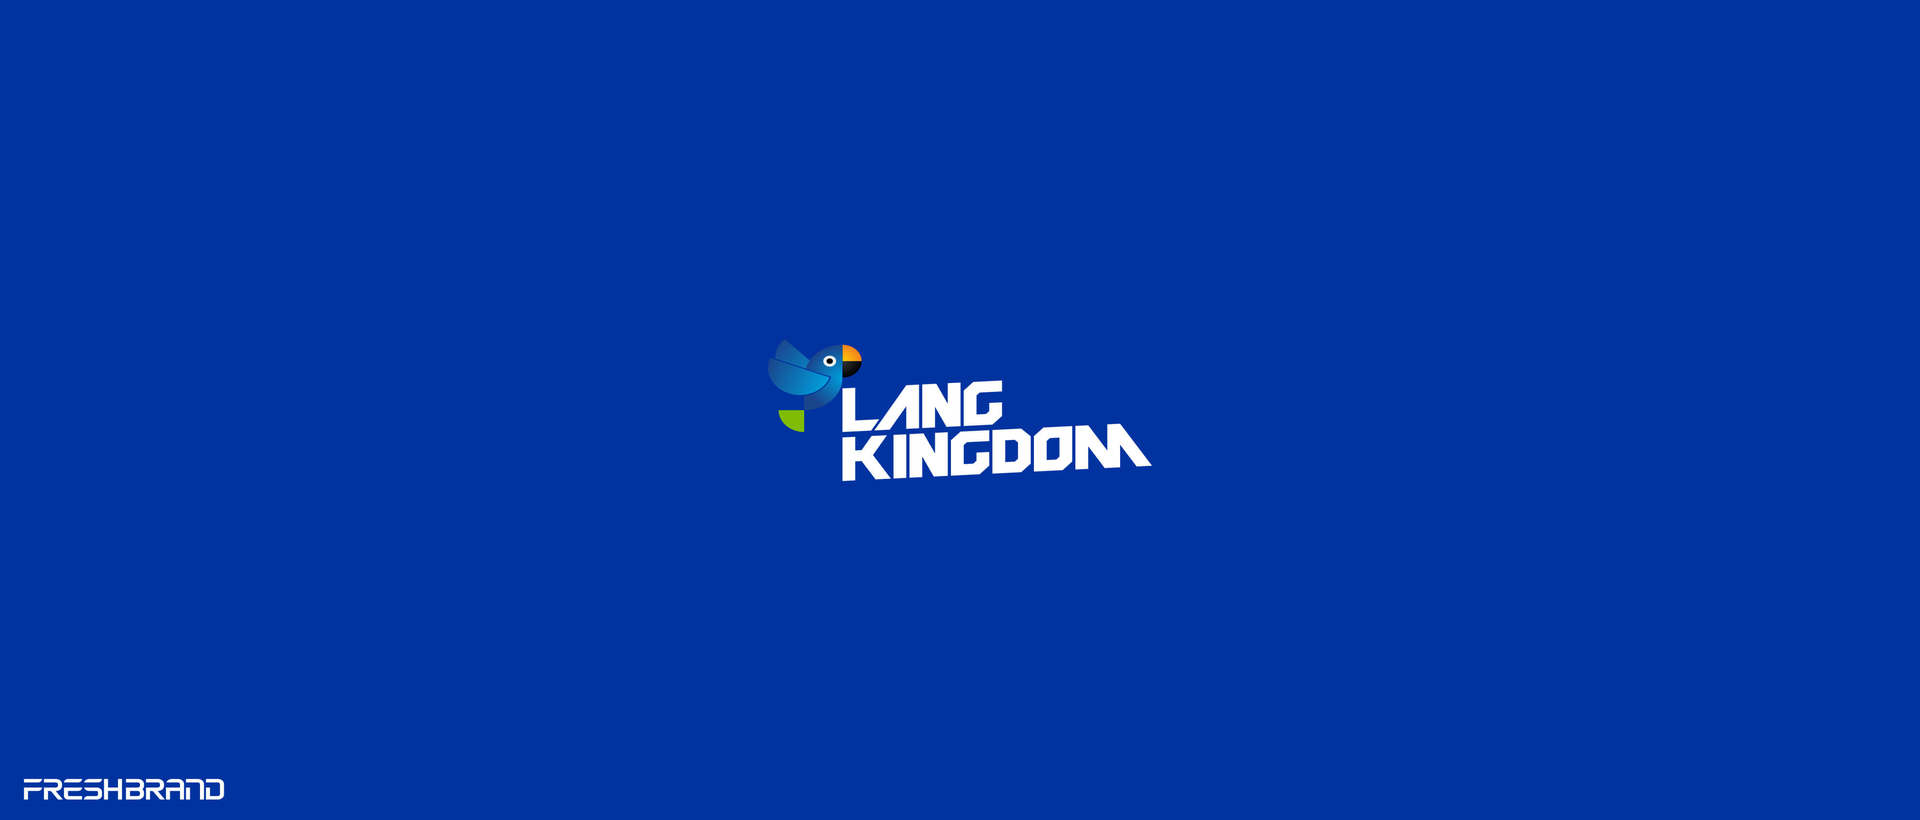 Lang Kingdom - Speak English FLUENTLY for FREE